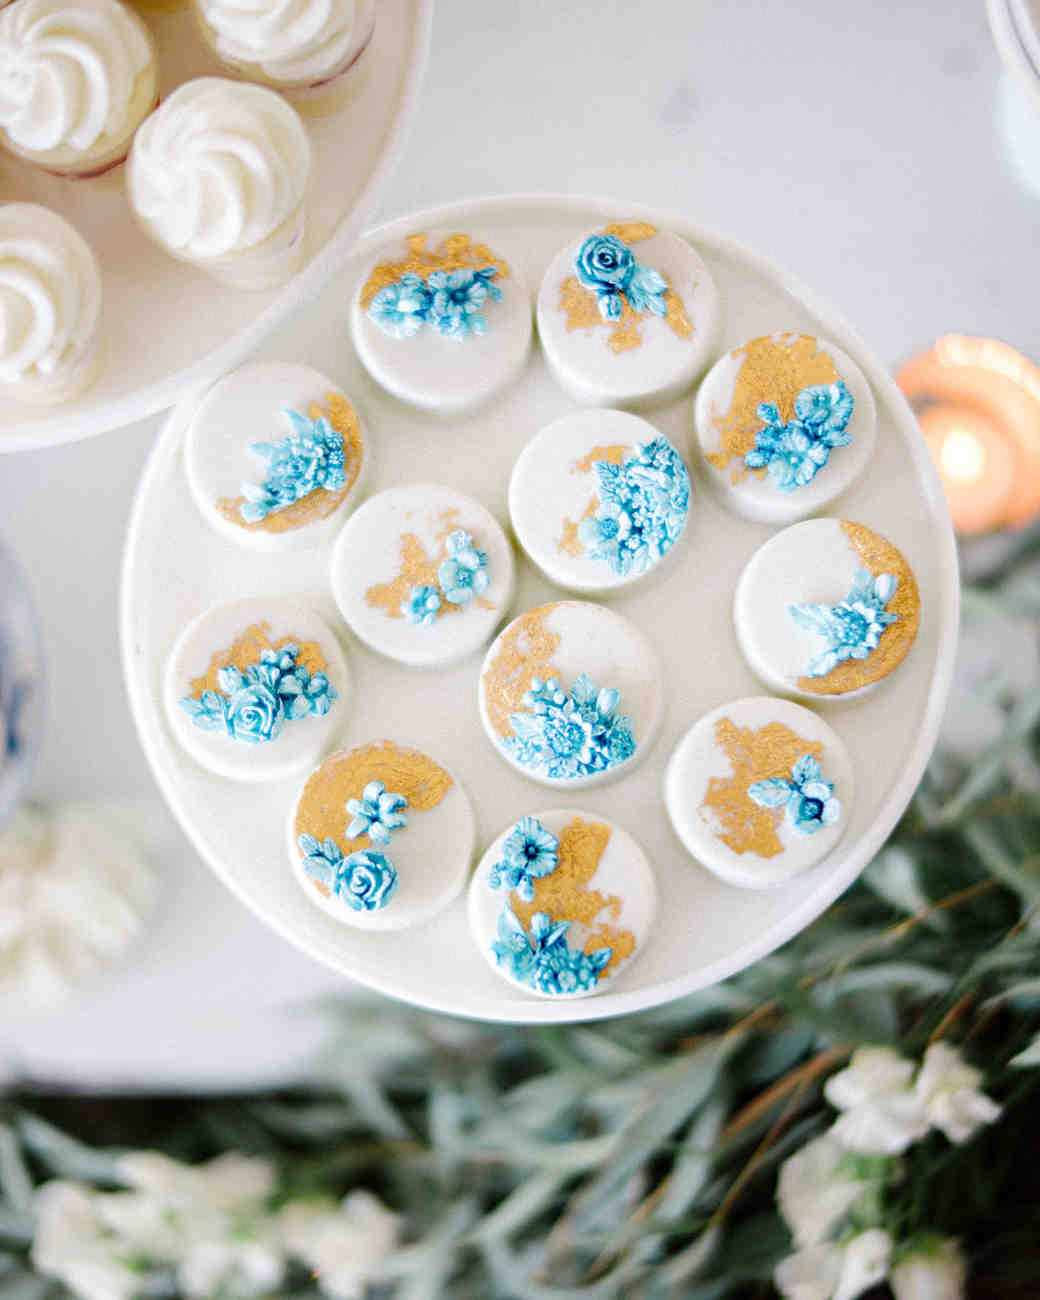 hannah steve wedding california chocolate-dipped oreos